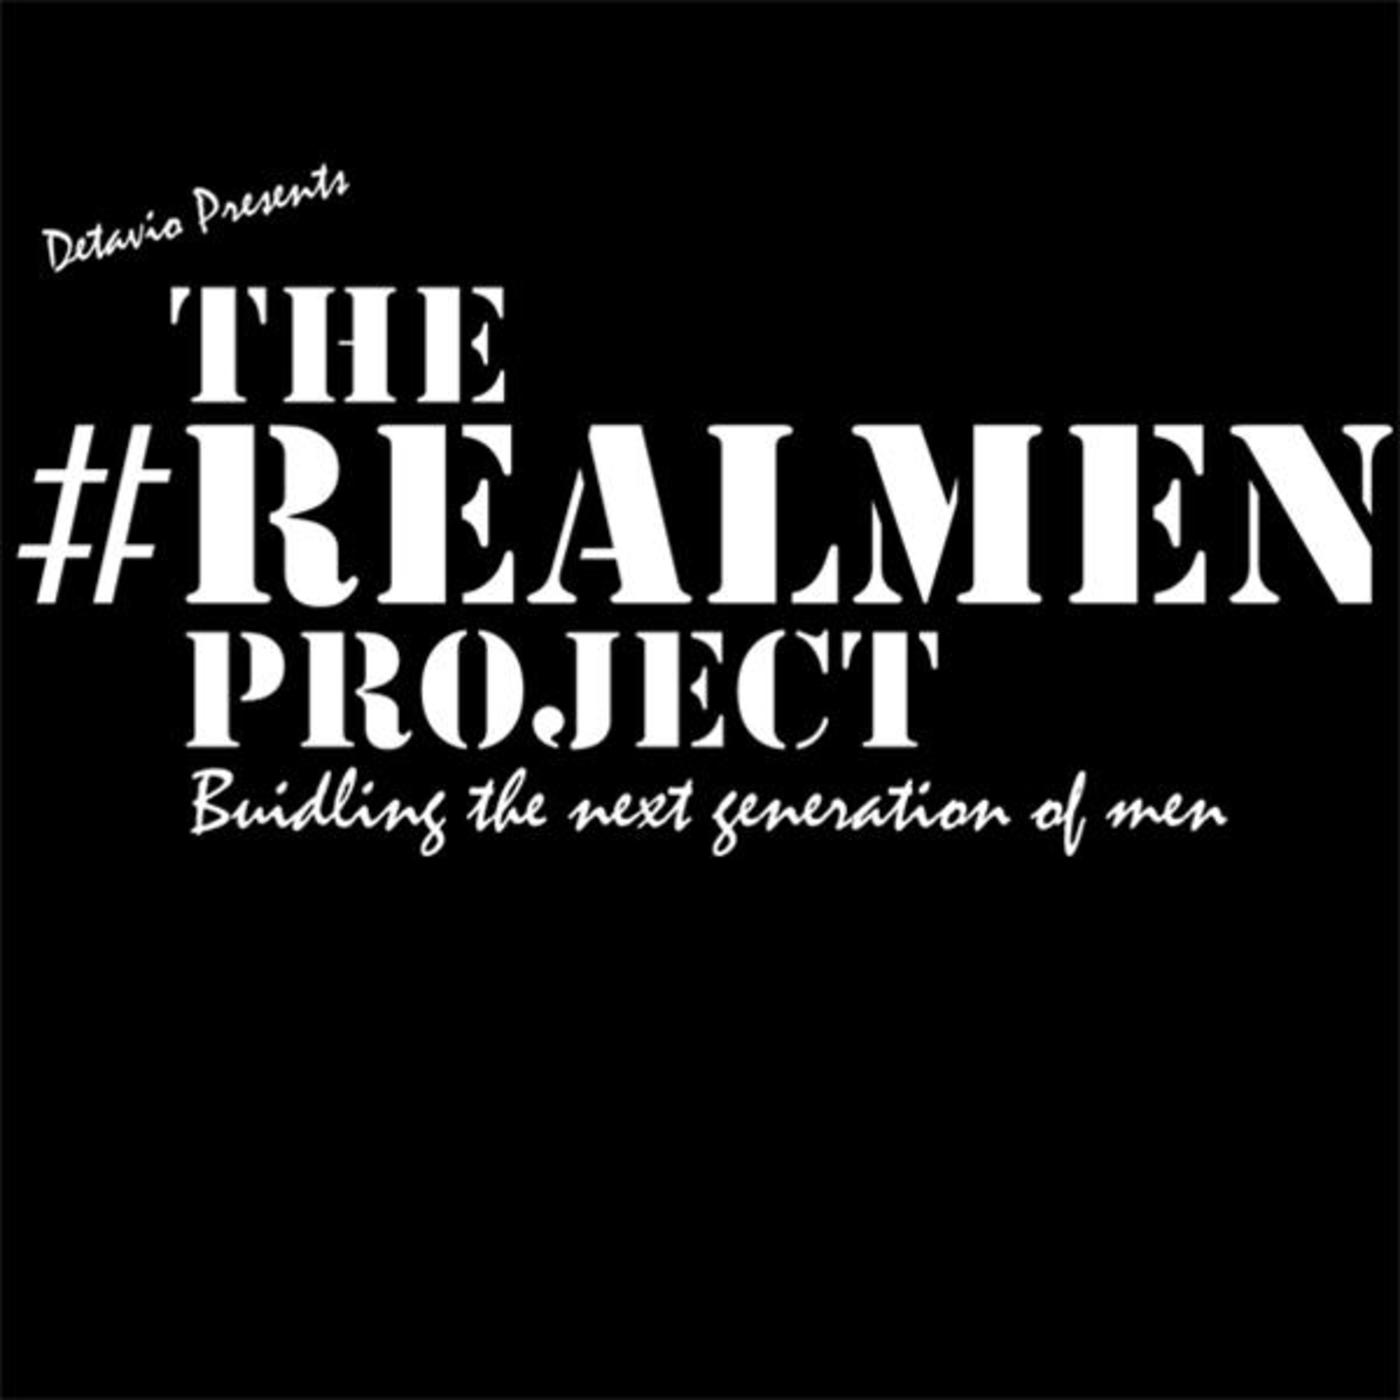 Detavio Presents The #RealMen Project